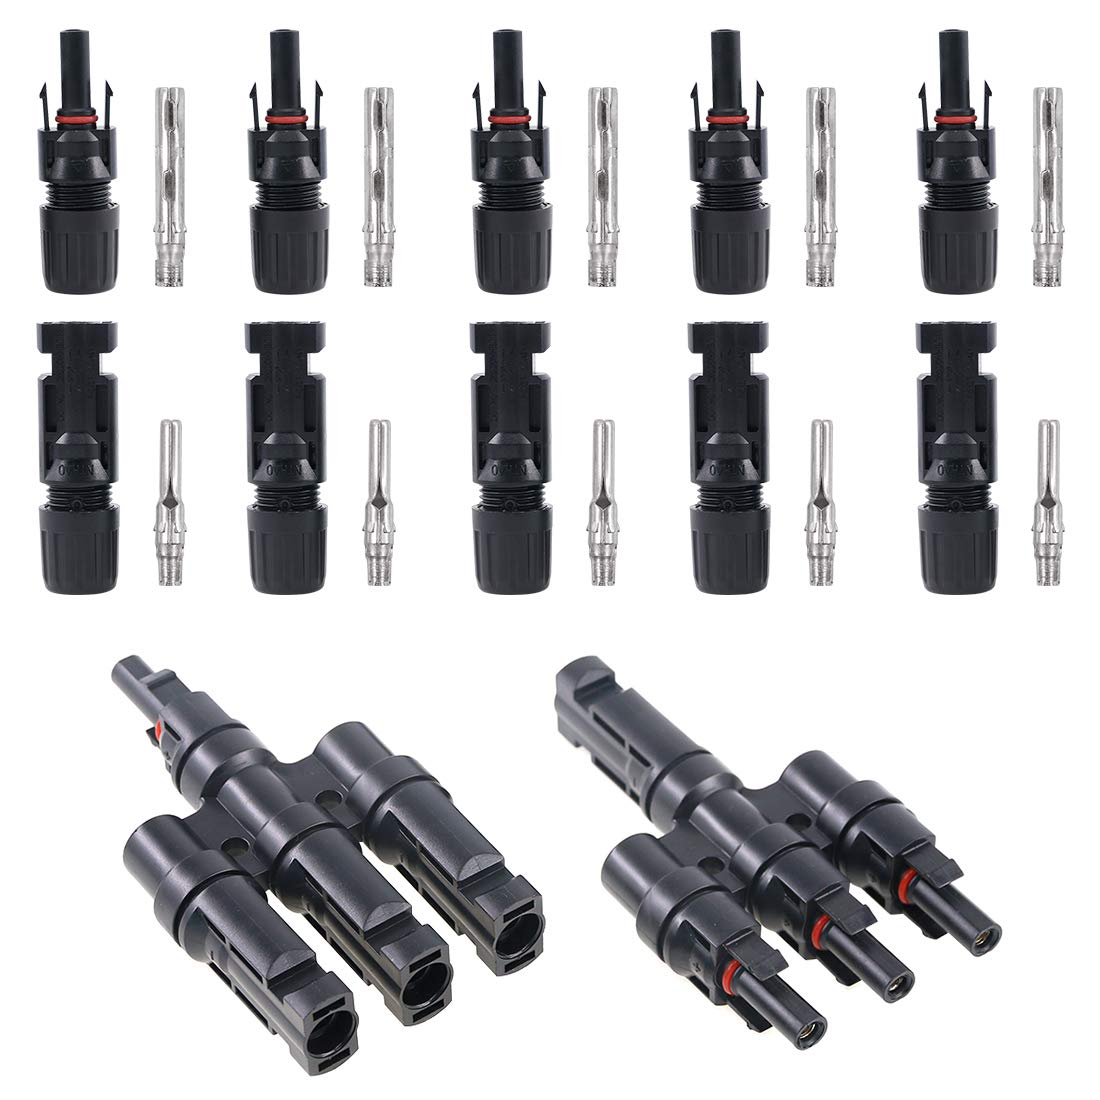 Glarks MC4 Solar Panel Connectors 1 Male to 3 Female and 1 Female to 3 Male T Branch Connectors Cable Coupler Combiner and 5 Pair MC4 Male/Female Solar Panel Cable Connectors Set (M/3F and F/3M)